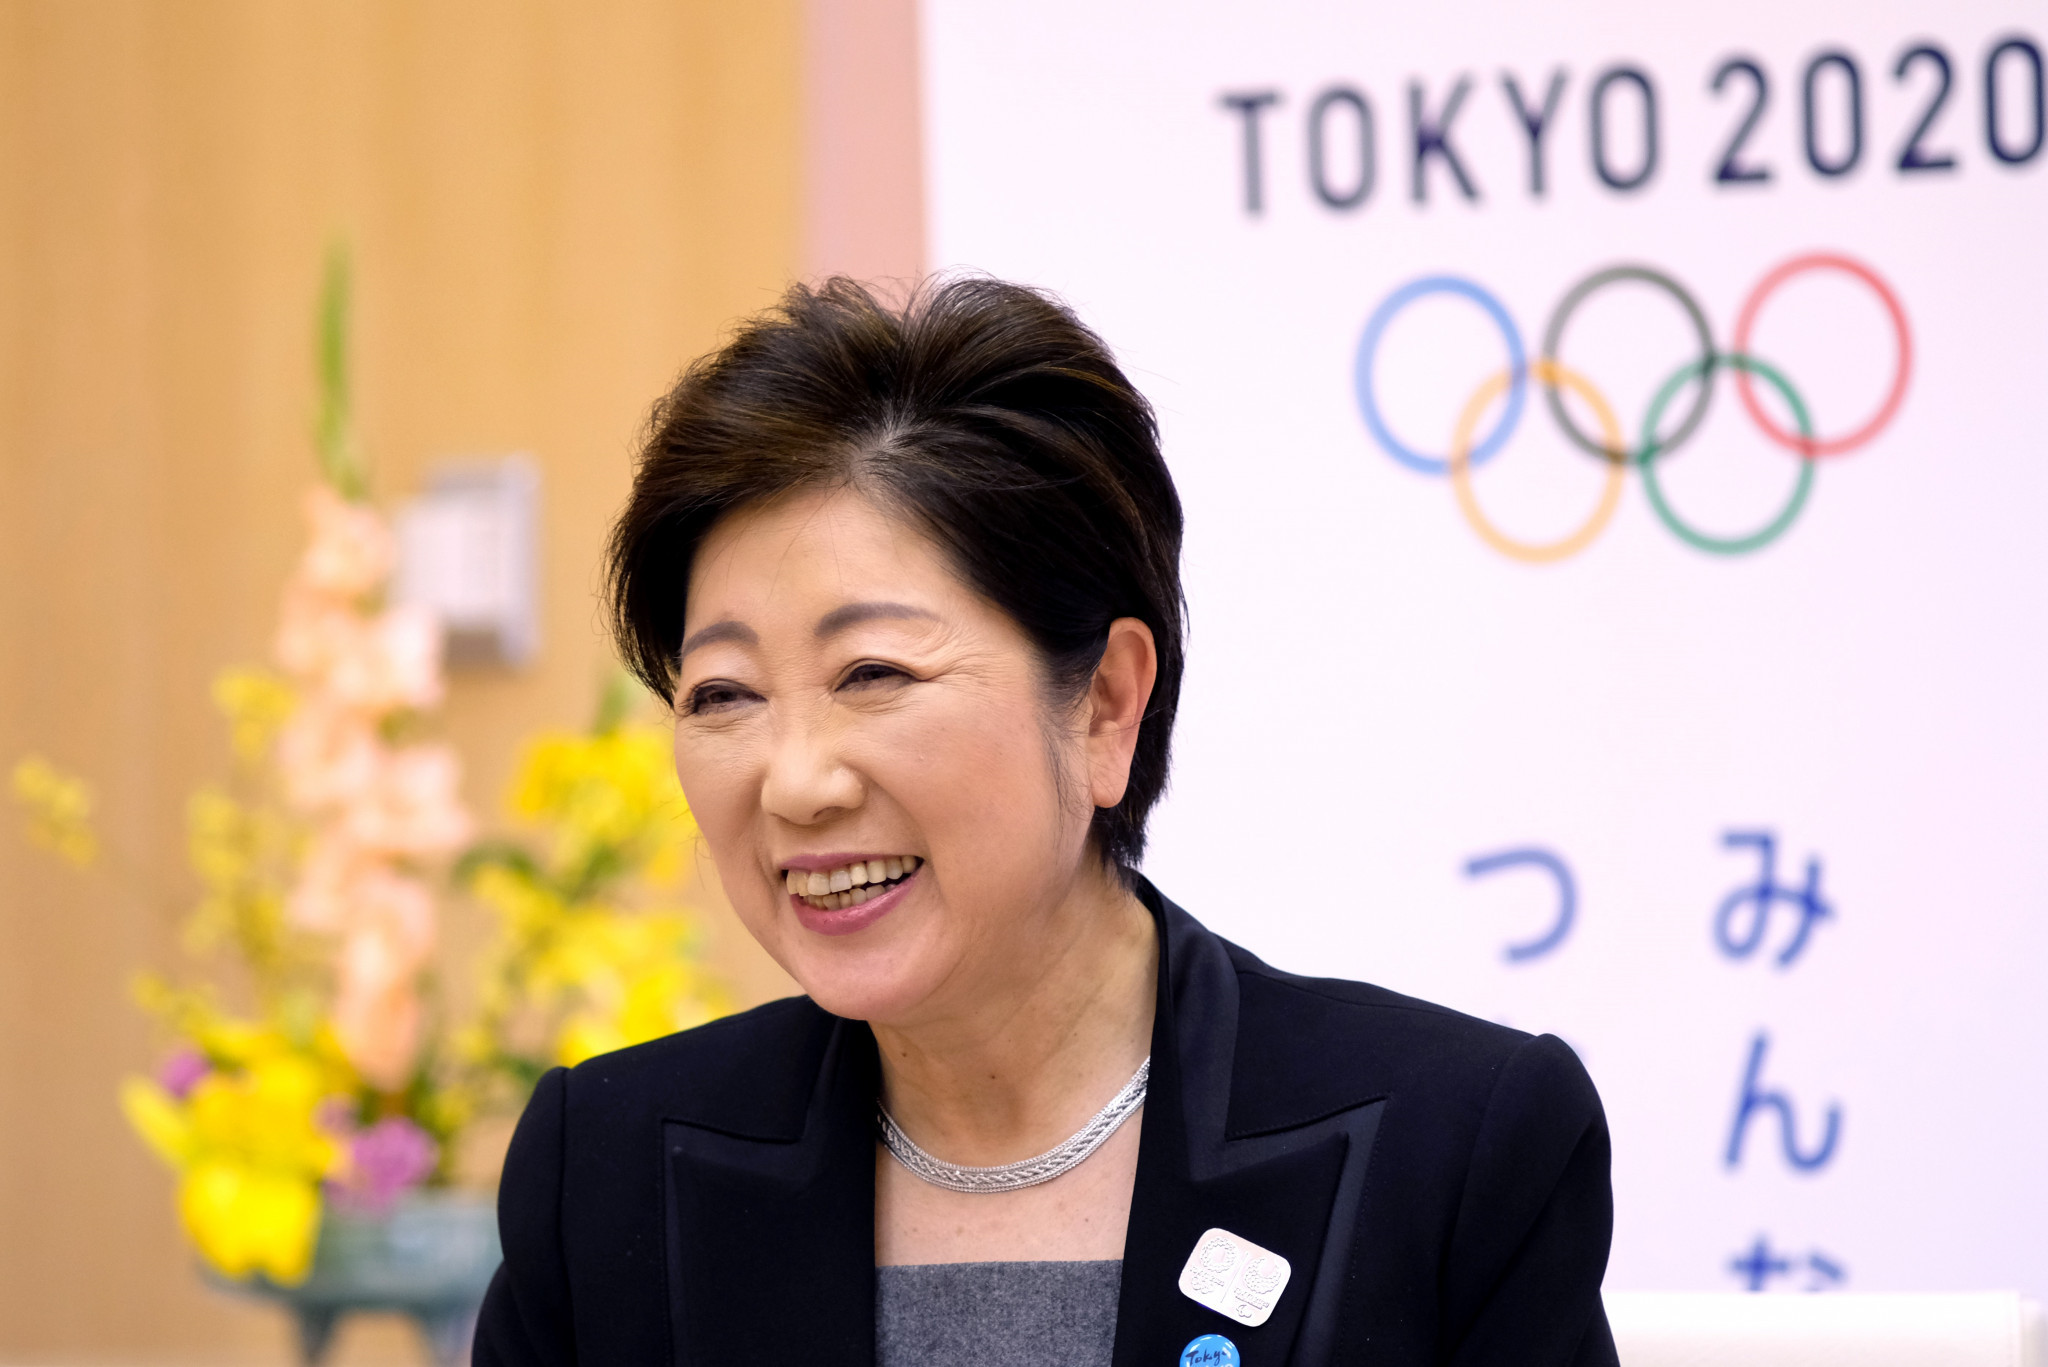 Yuriko Koike has been elected for a second term as Tokyo Governor ©Getty Images